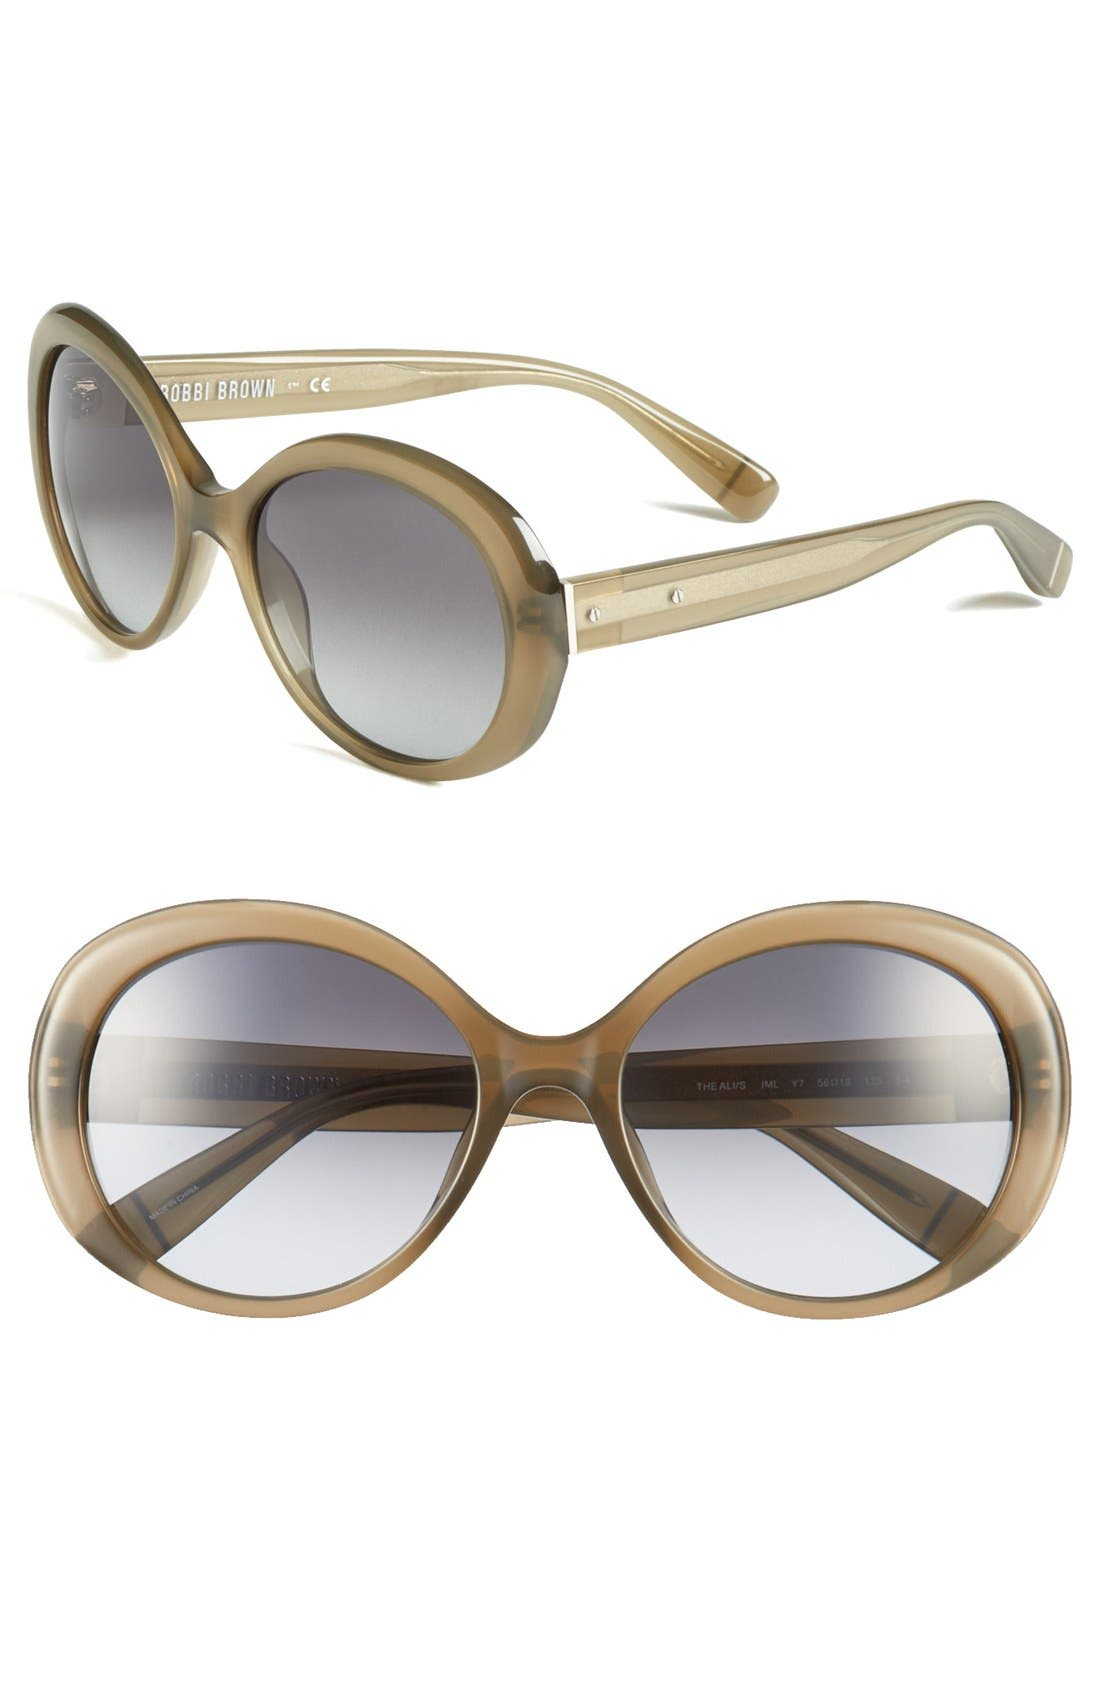 Alternate Image 1 Selected - Bobbi Brown 'The Ali' 56mm Sunglasses